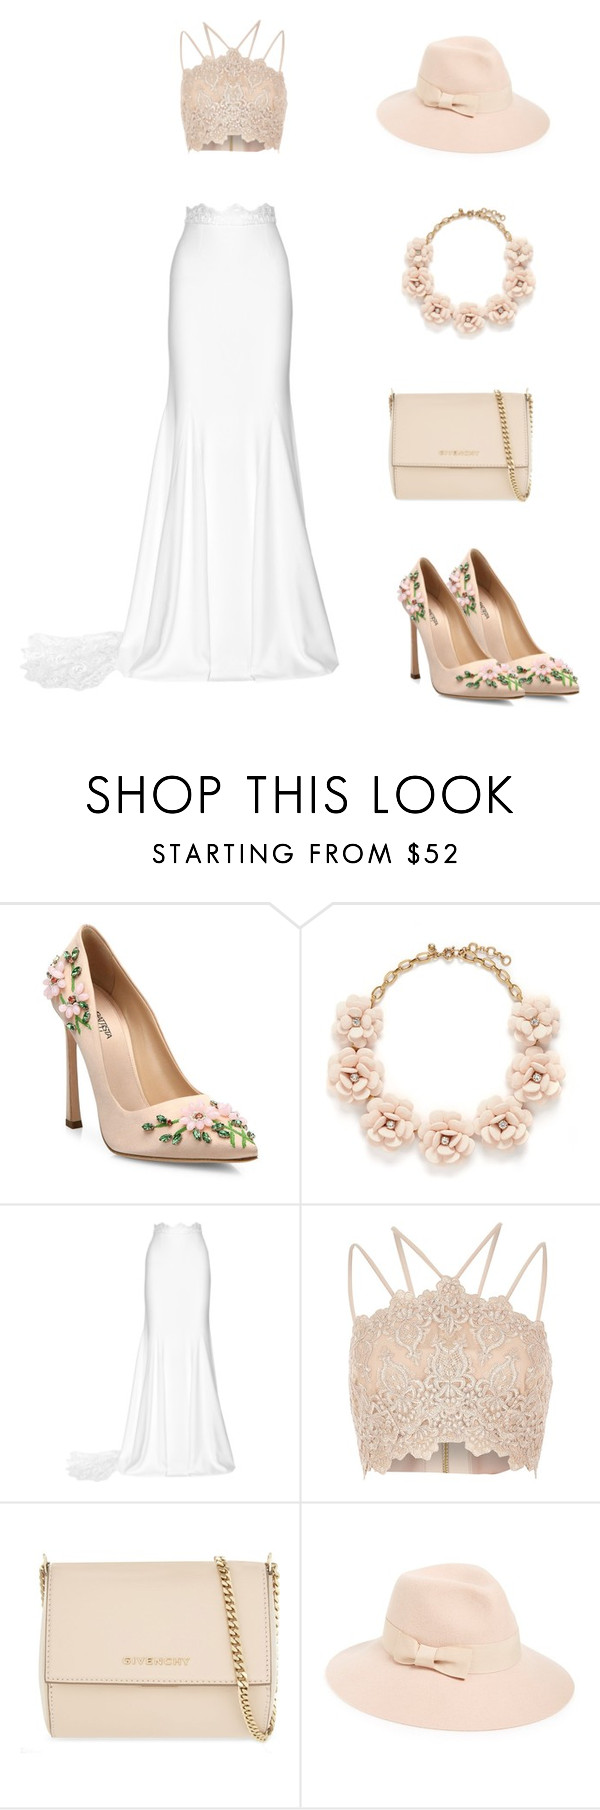 """""""16"""" by mivaldal on Polyvore featuring Giambattista Valli, J.Crew, Rime Arodaky, River Island, Givenchy and August Hat"""